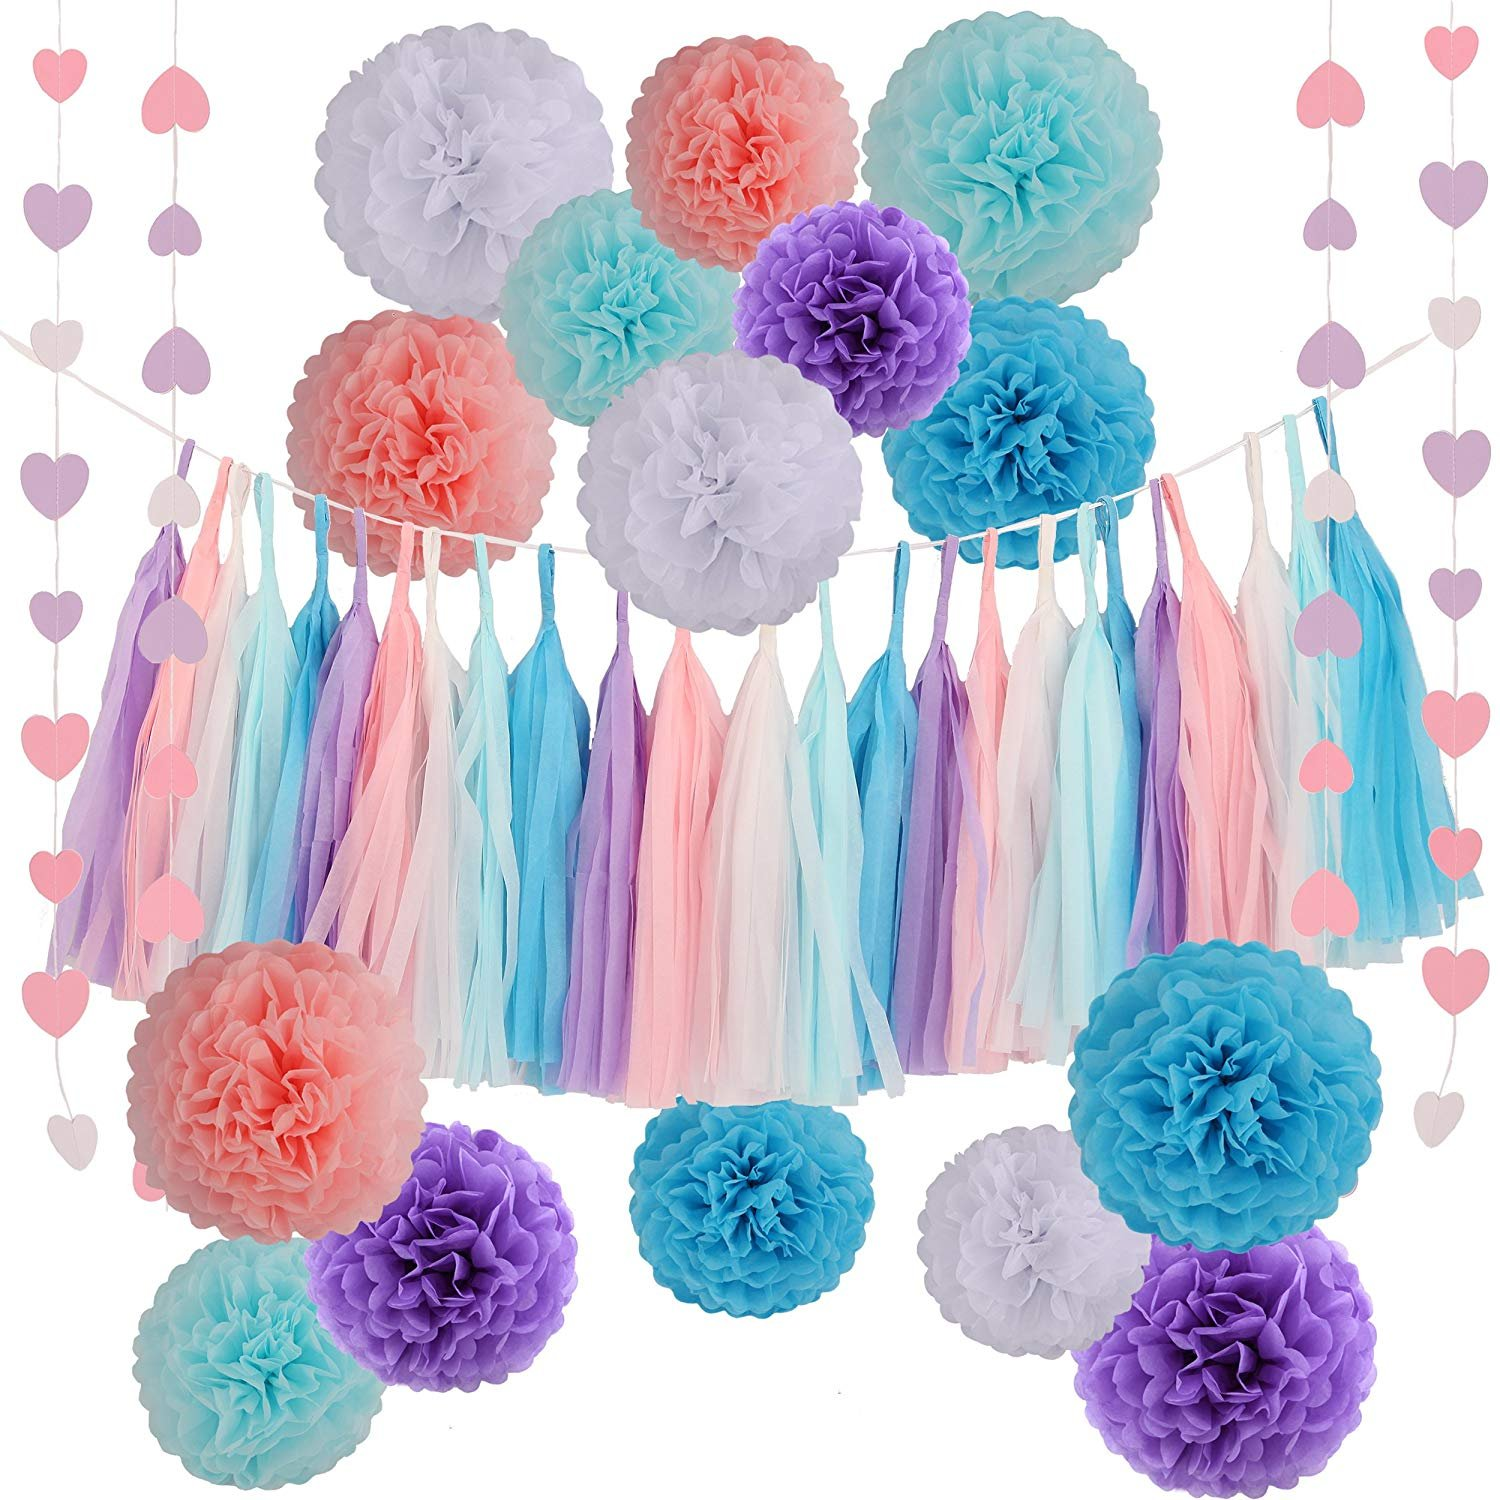 LyButty Tissue Paper Pom Poms Flowers Tissue Tassel Garland Love Hear Paper Garland Kit for Wedding Baby Bridal Shower Party Decorations Supplies by LyButty